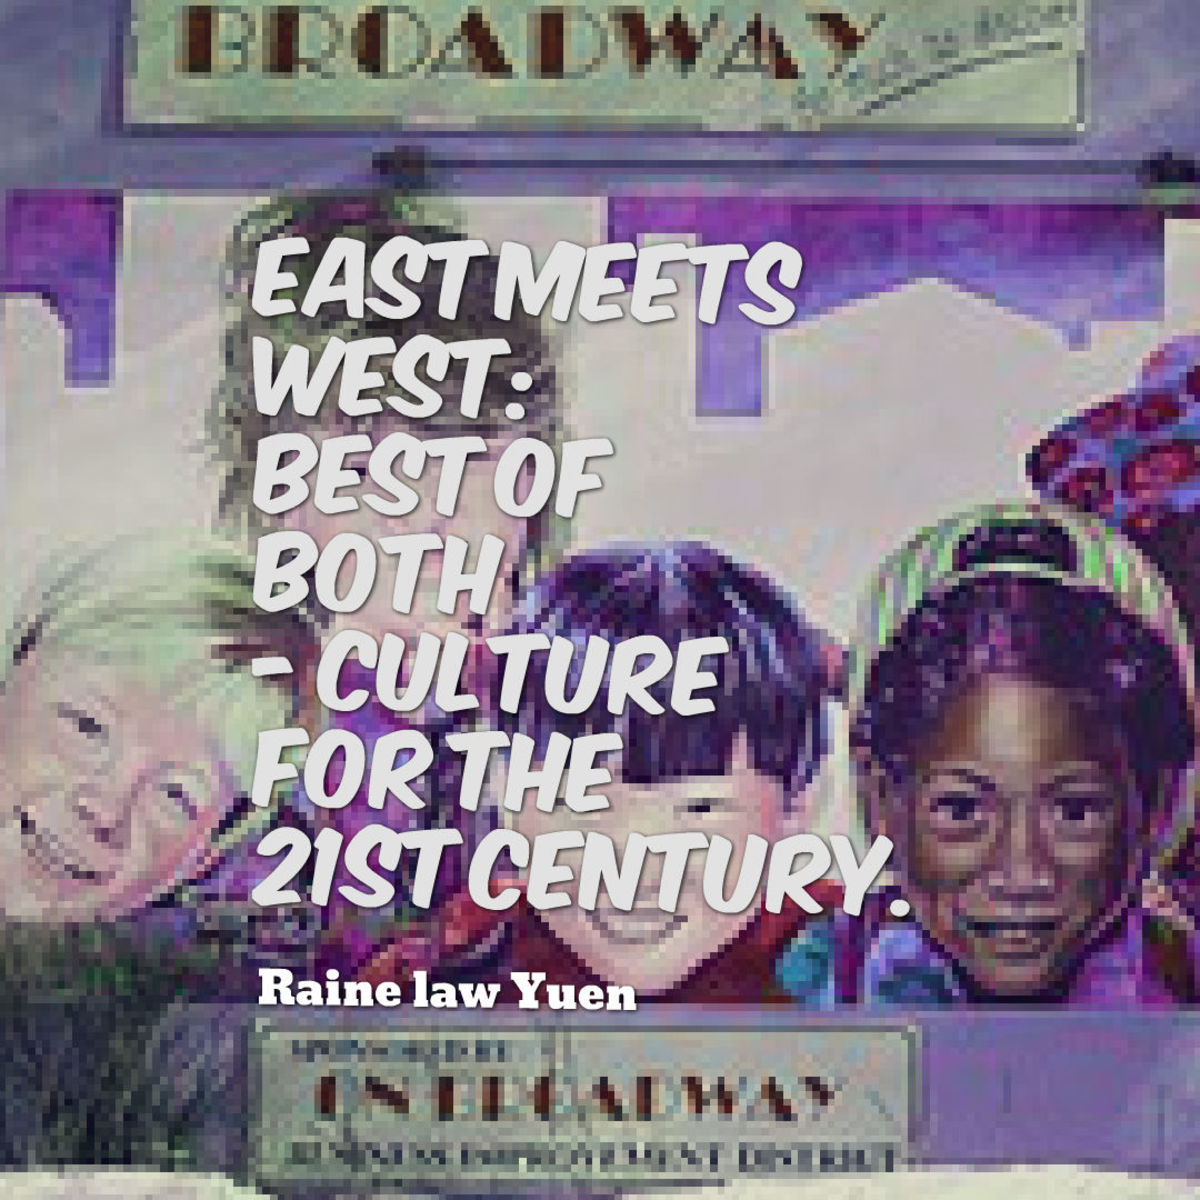 East-West: Best of Both - Culture for the 21st Century.